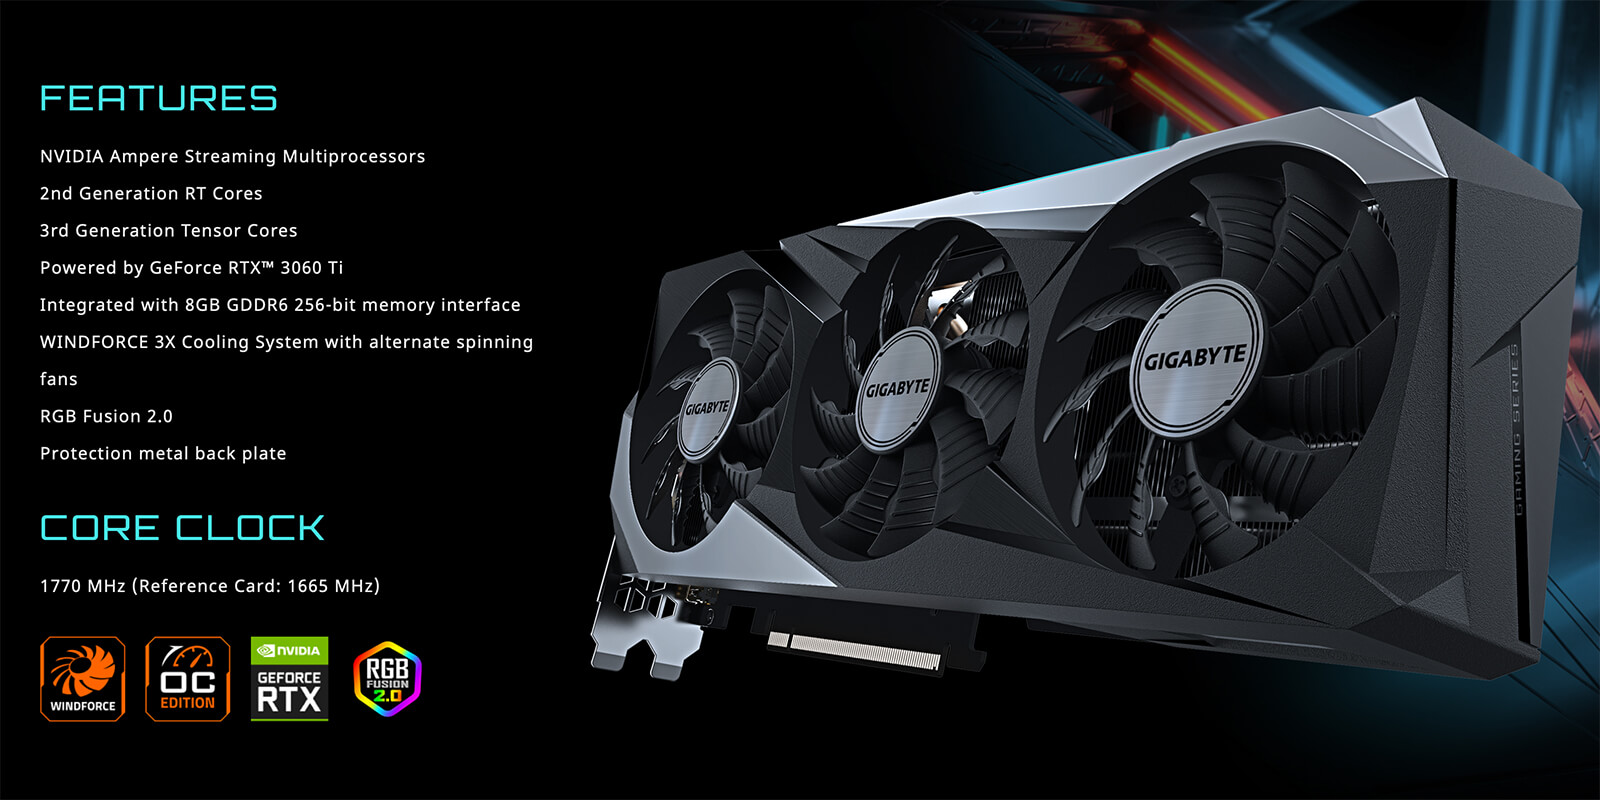 Gigabyte Geforce® Rtx 3060 Ti Gaming Oc Pro 8g Features